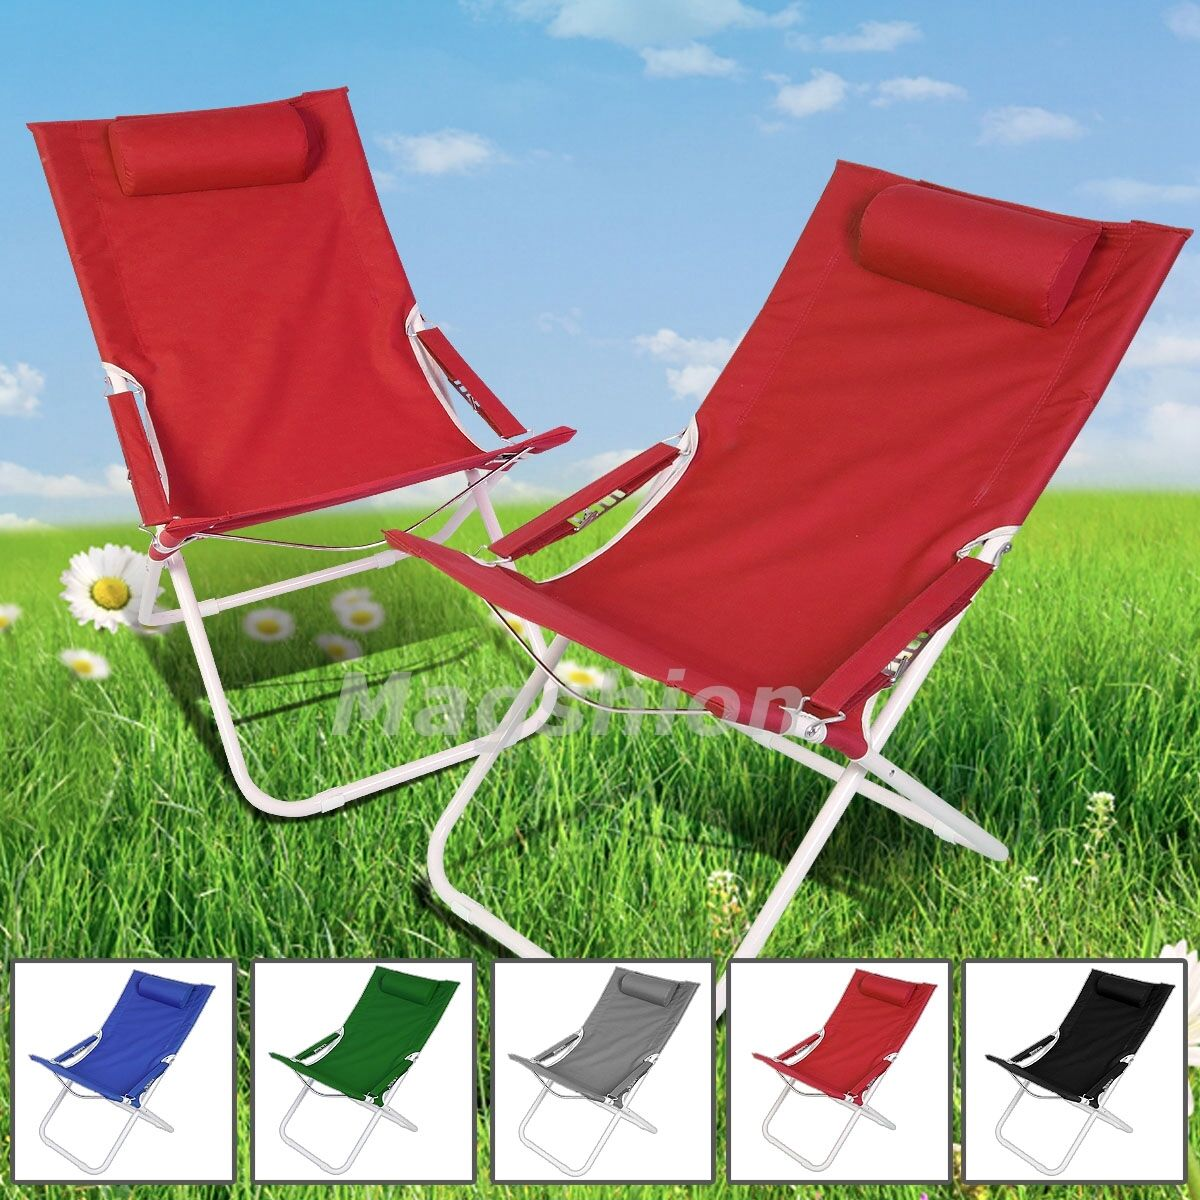 Red Curved Chair Folding Lounge Reclining Patio Pool Beach L